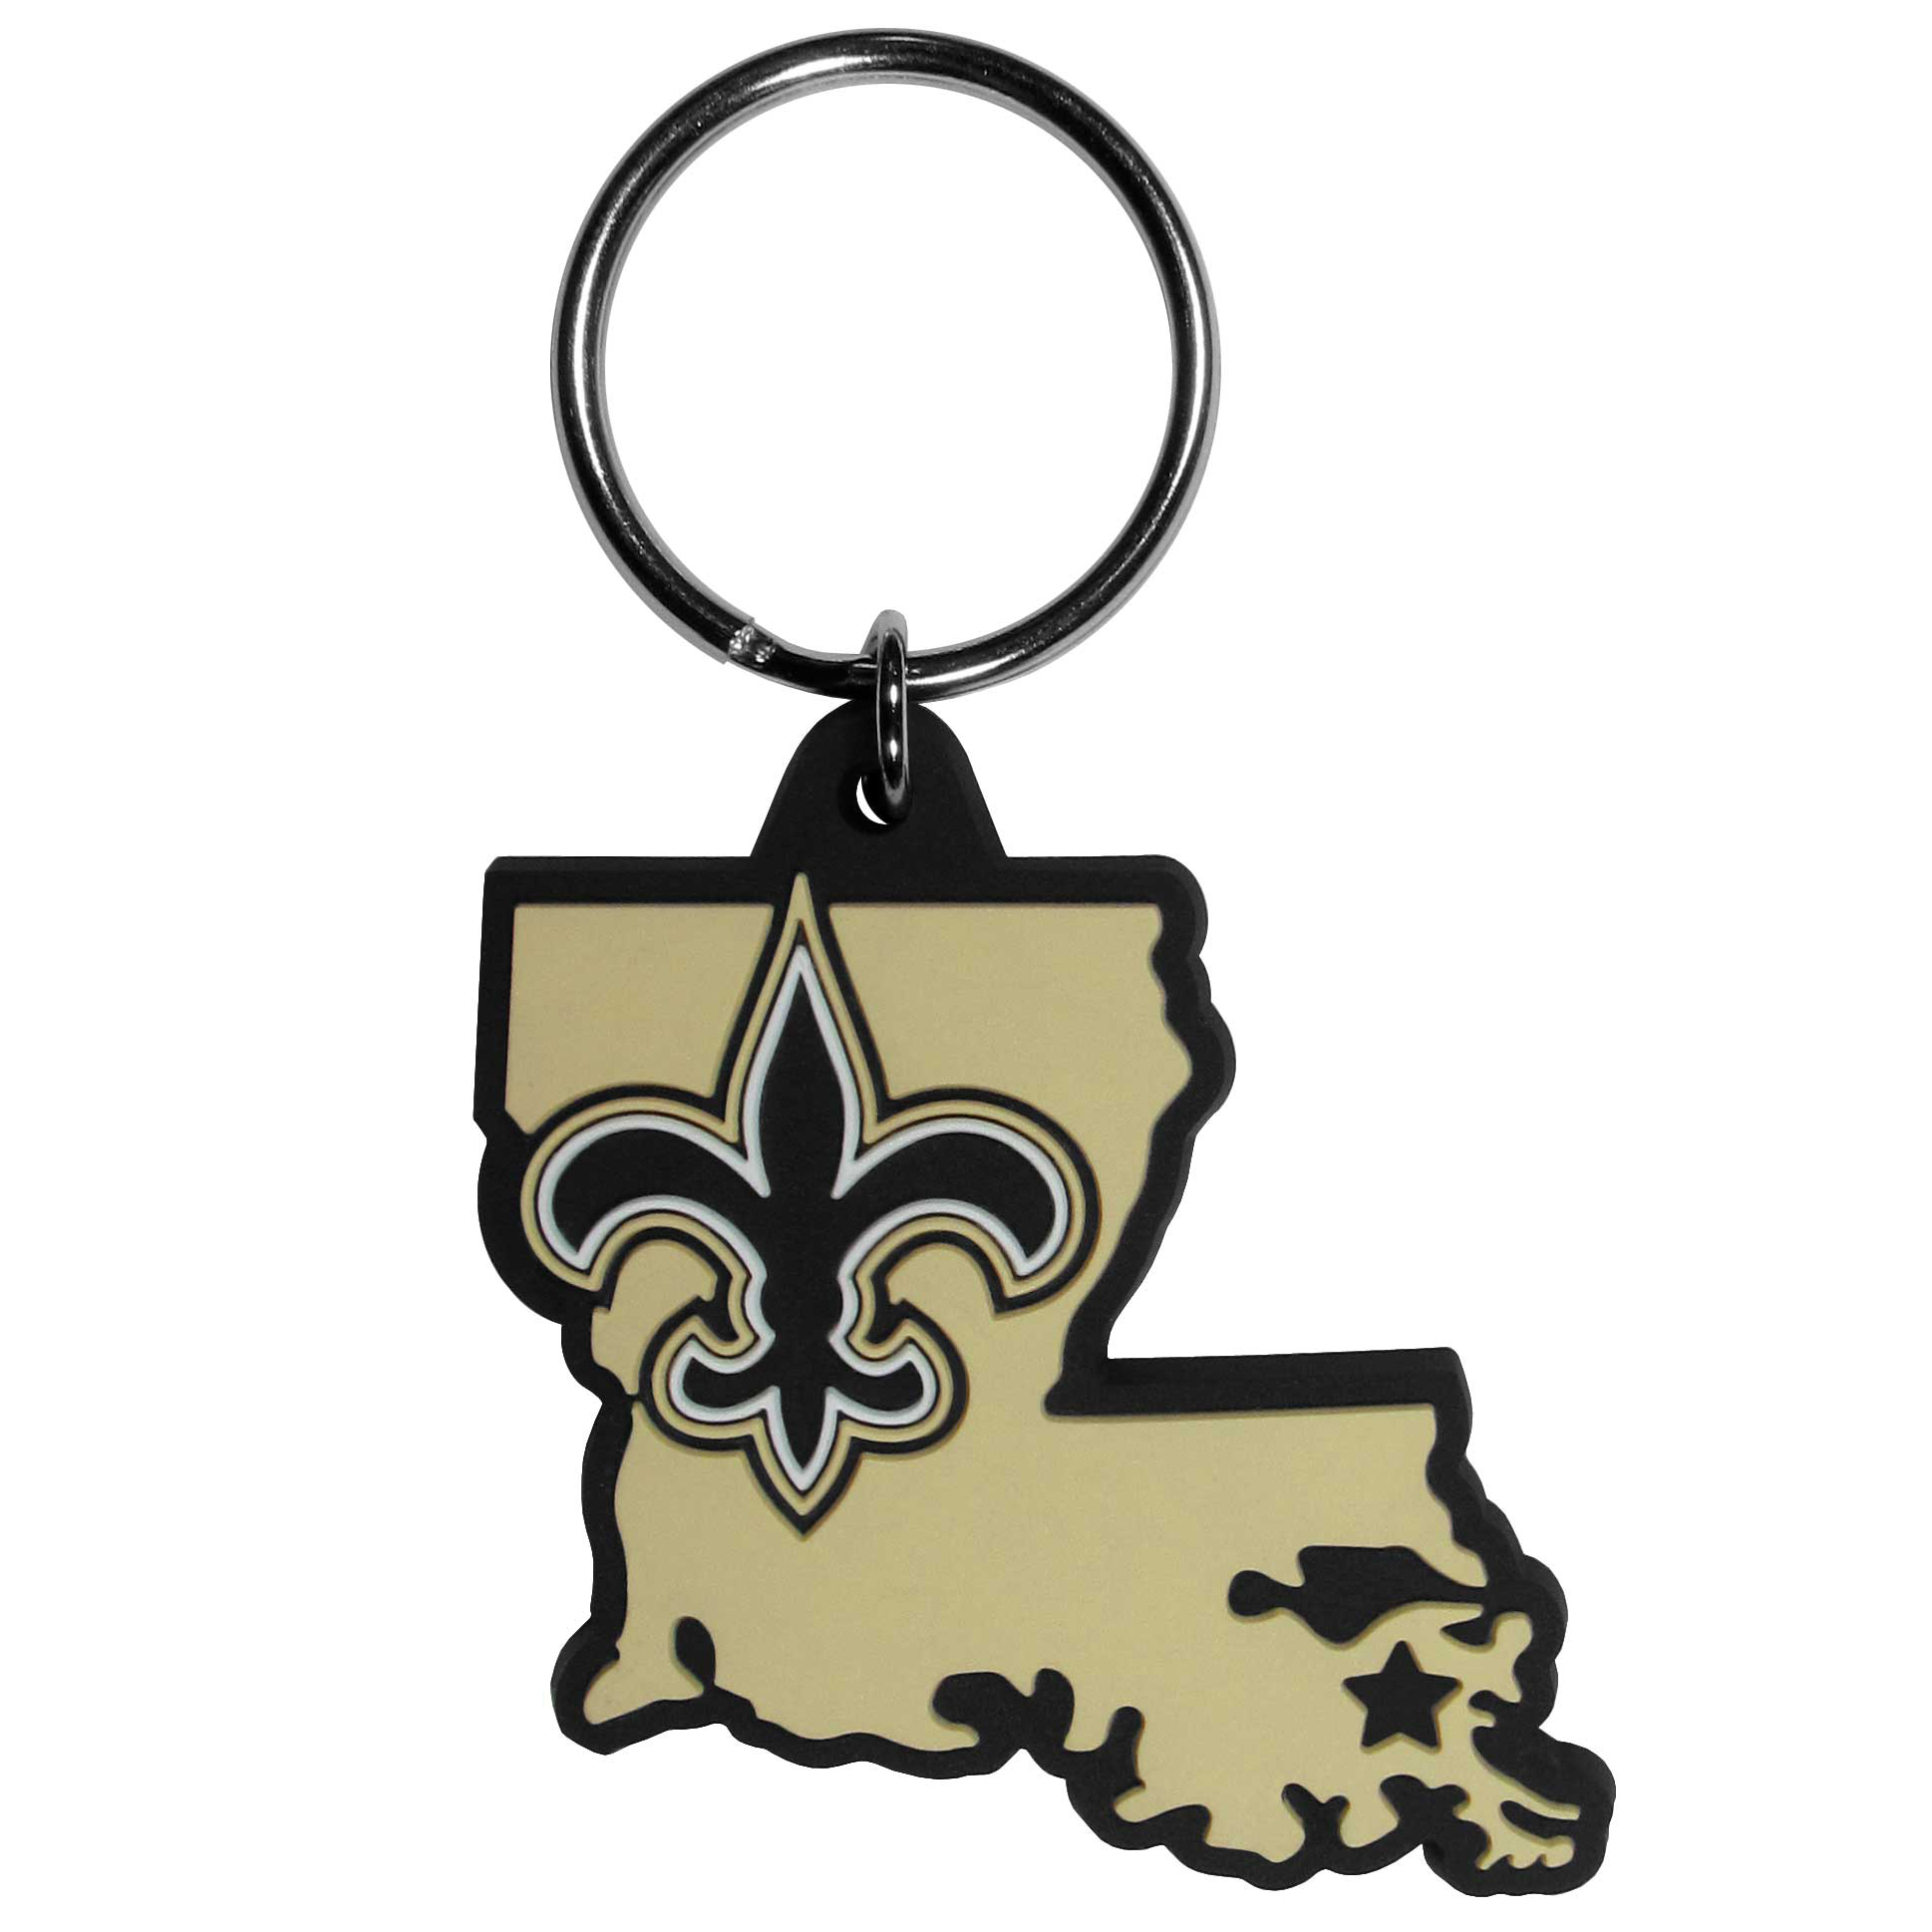 New Orleans Saints Home State Flexi Key Chain - Our flexible New Orleans Saints key chains are a fun way to carry your team with you. The pliable rubber material is extremely durable and is the layered colors add a great 3D look to the key chain. This is really where quality and a great price meet to create a true fan favorite.